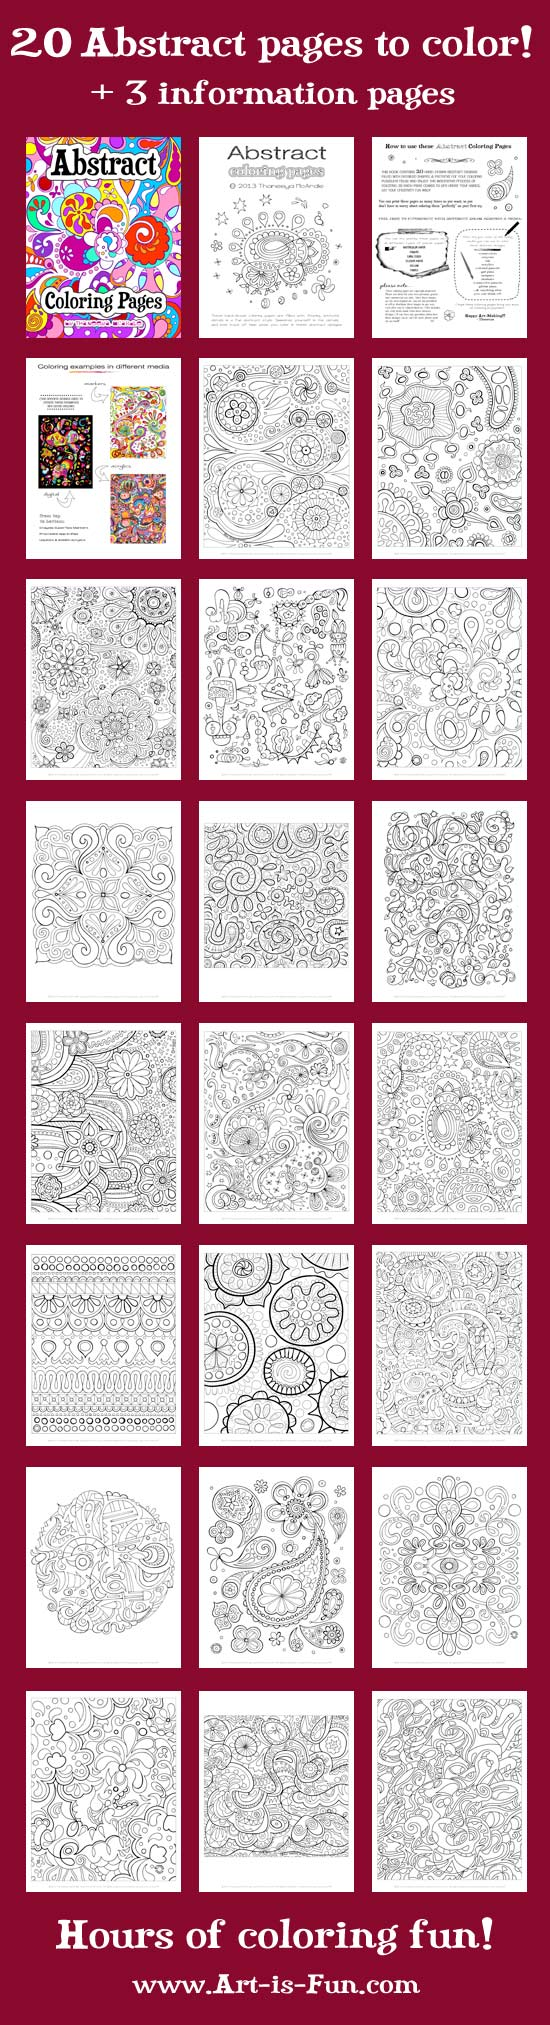 printable abstract coloring pages overview - Printable Abstract Coloring Pages